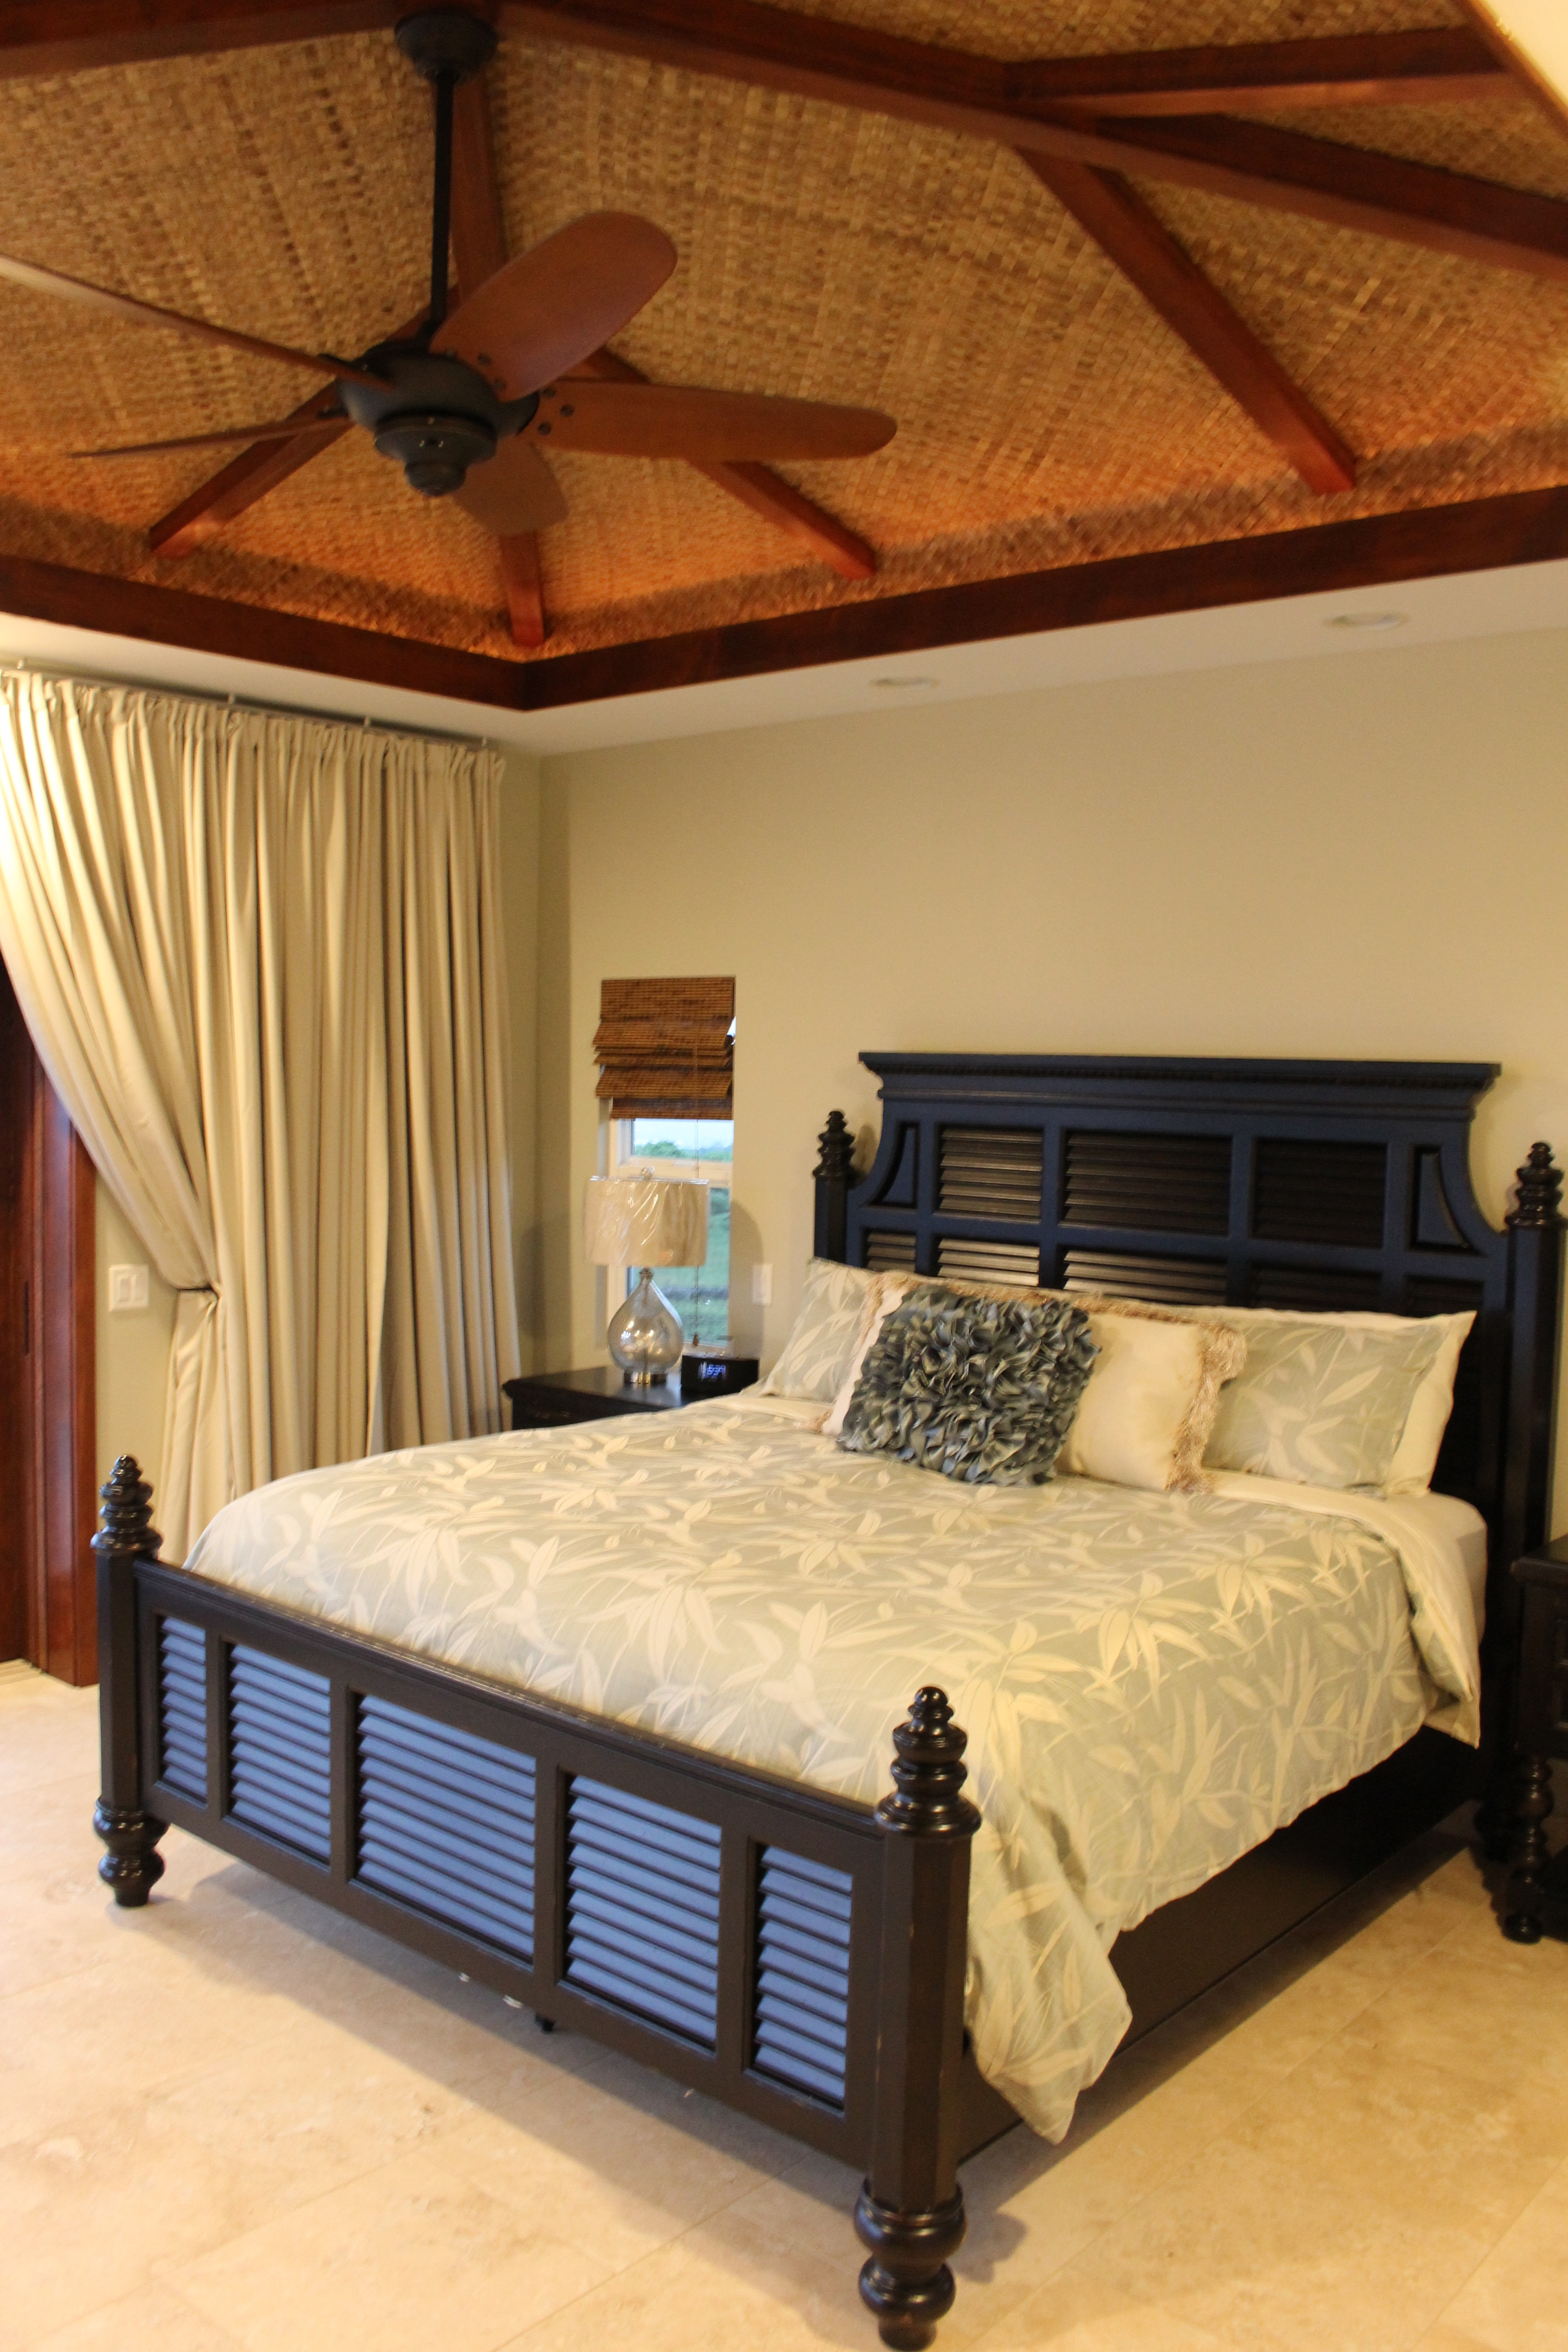 2nd master bedroom (king bed) with ocean view and